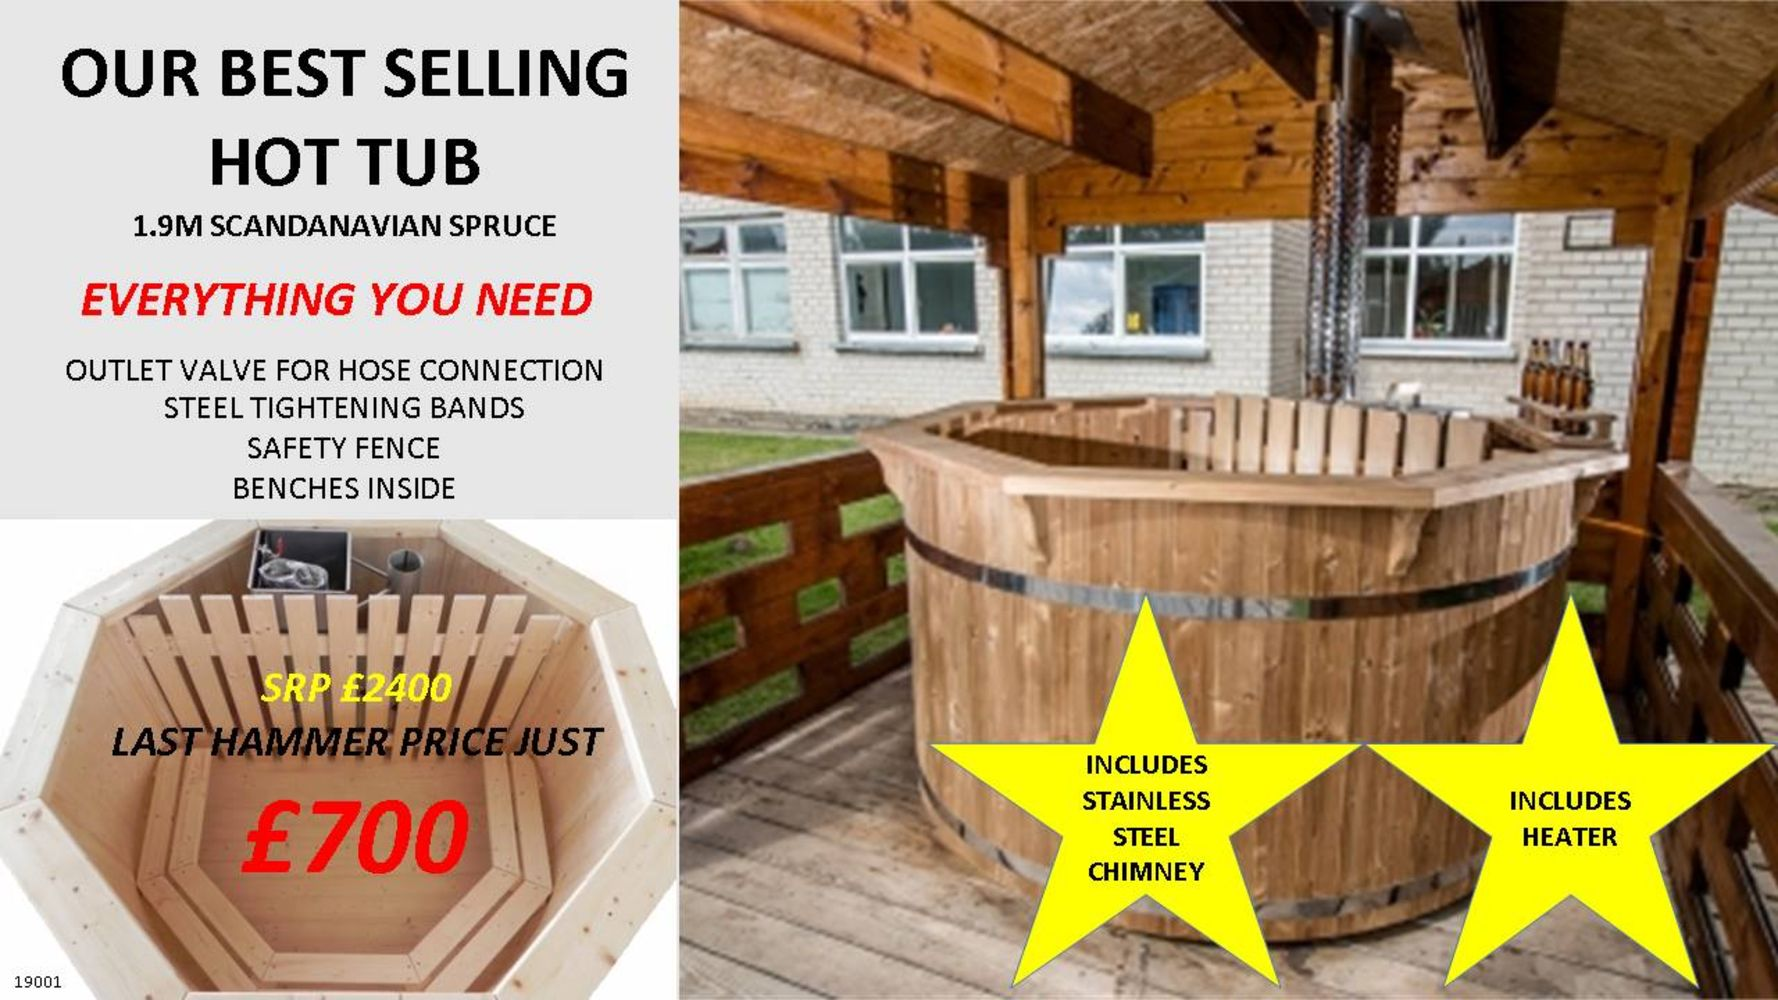 Scandinavian-Style Hot Tubs Plus a Range of Stylish Patio Heaters - Get Your Garden Summer-Ready